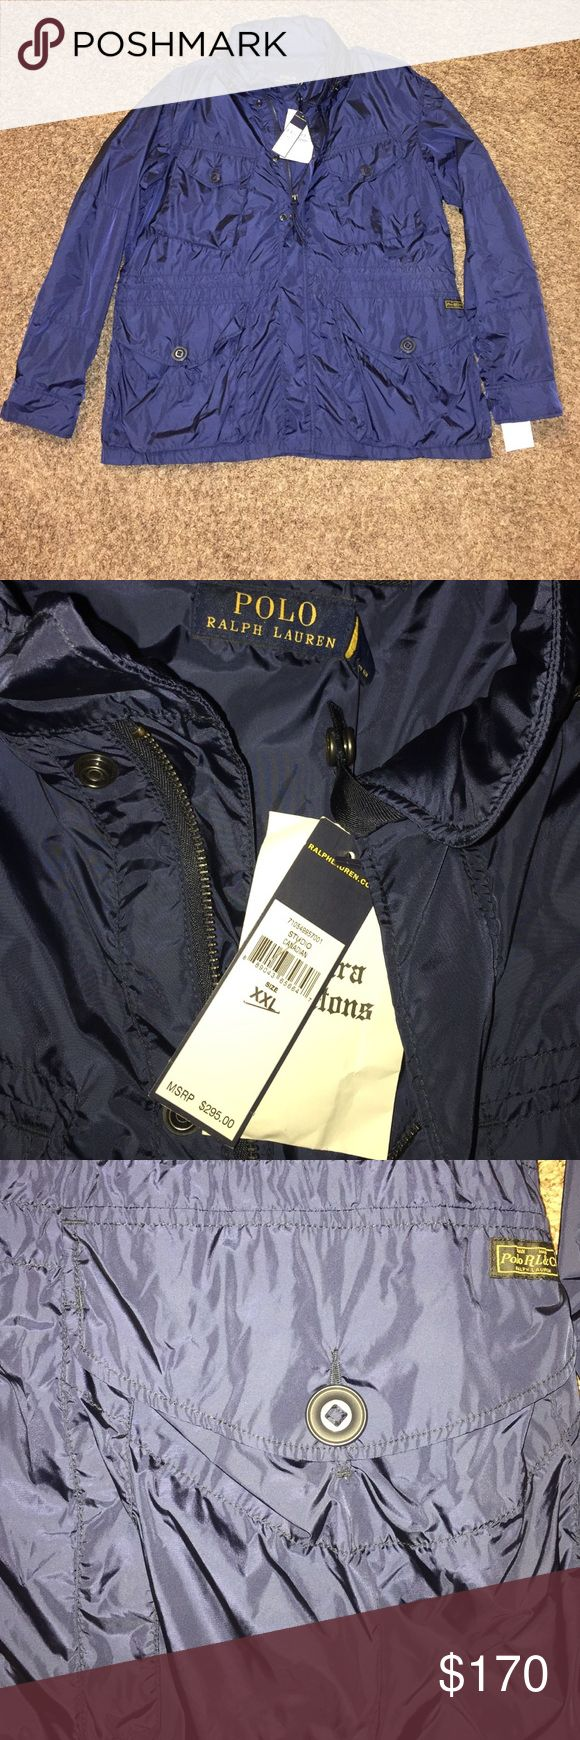 Ralph Lauren Polo Combat Jacket Navy A versatile Ralph Lauren Taffeta Combat jacket that'll have you ready for rain or chilly weather and looking good through fall, winter, and spring! This currently sells at Saks and elsewhere for $295. Get it brand new at a steal price. Polo by Ralph Lauren Jackets & Coats